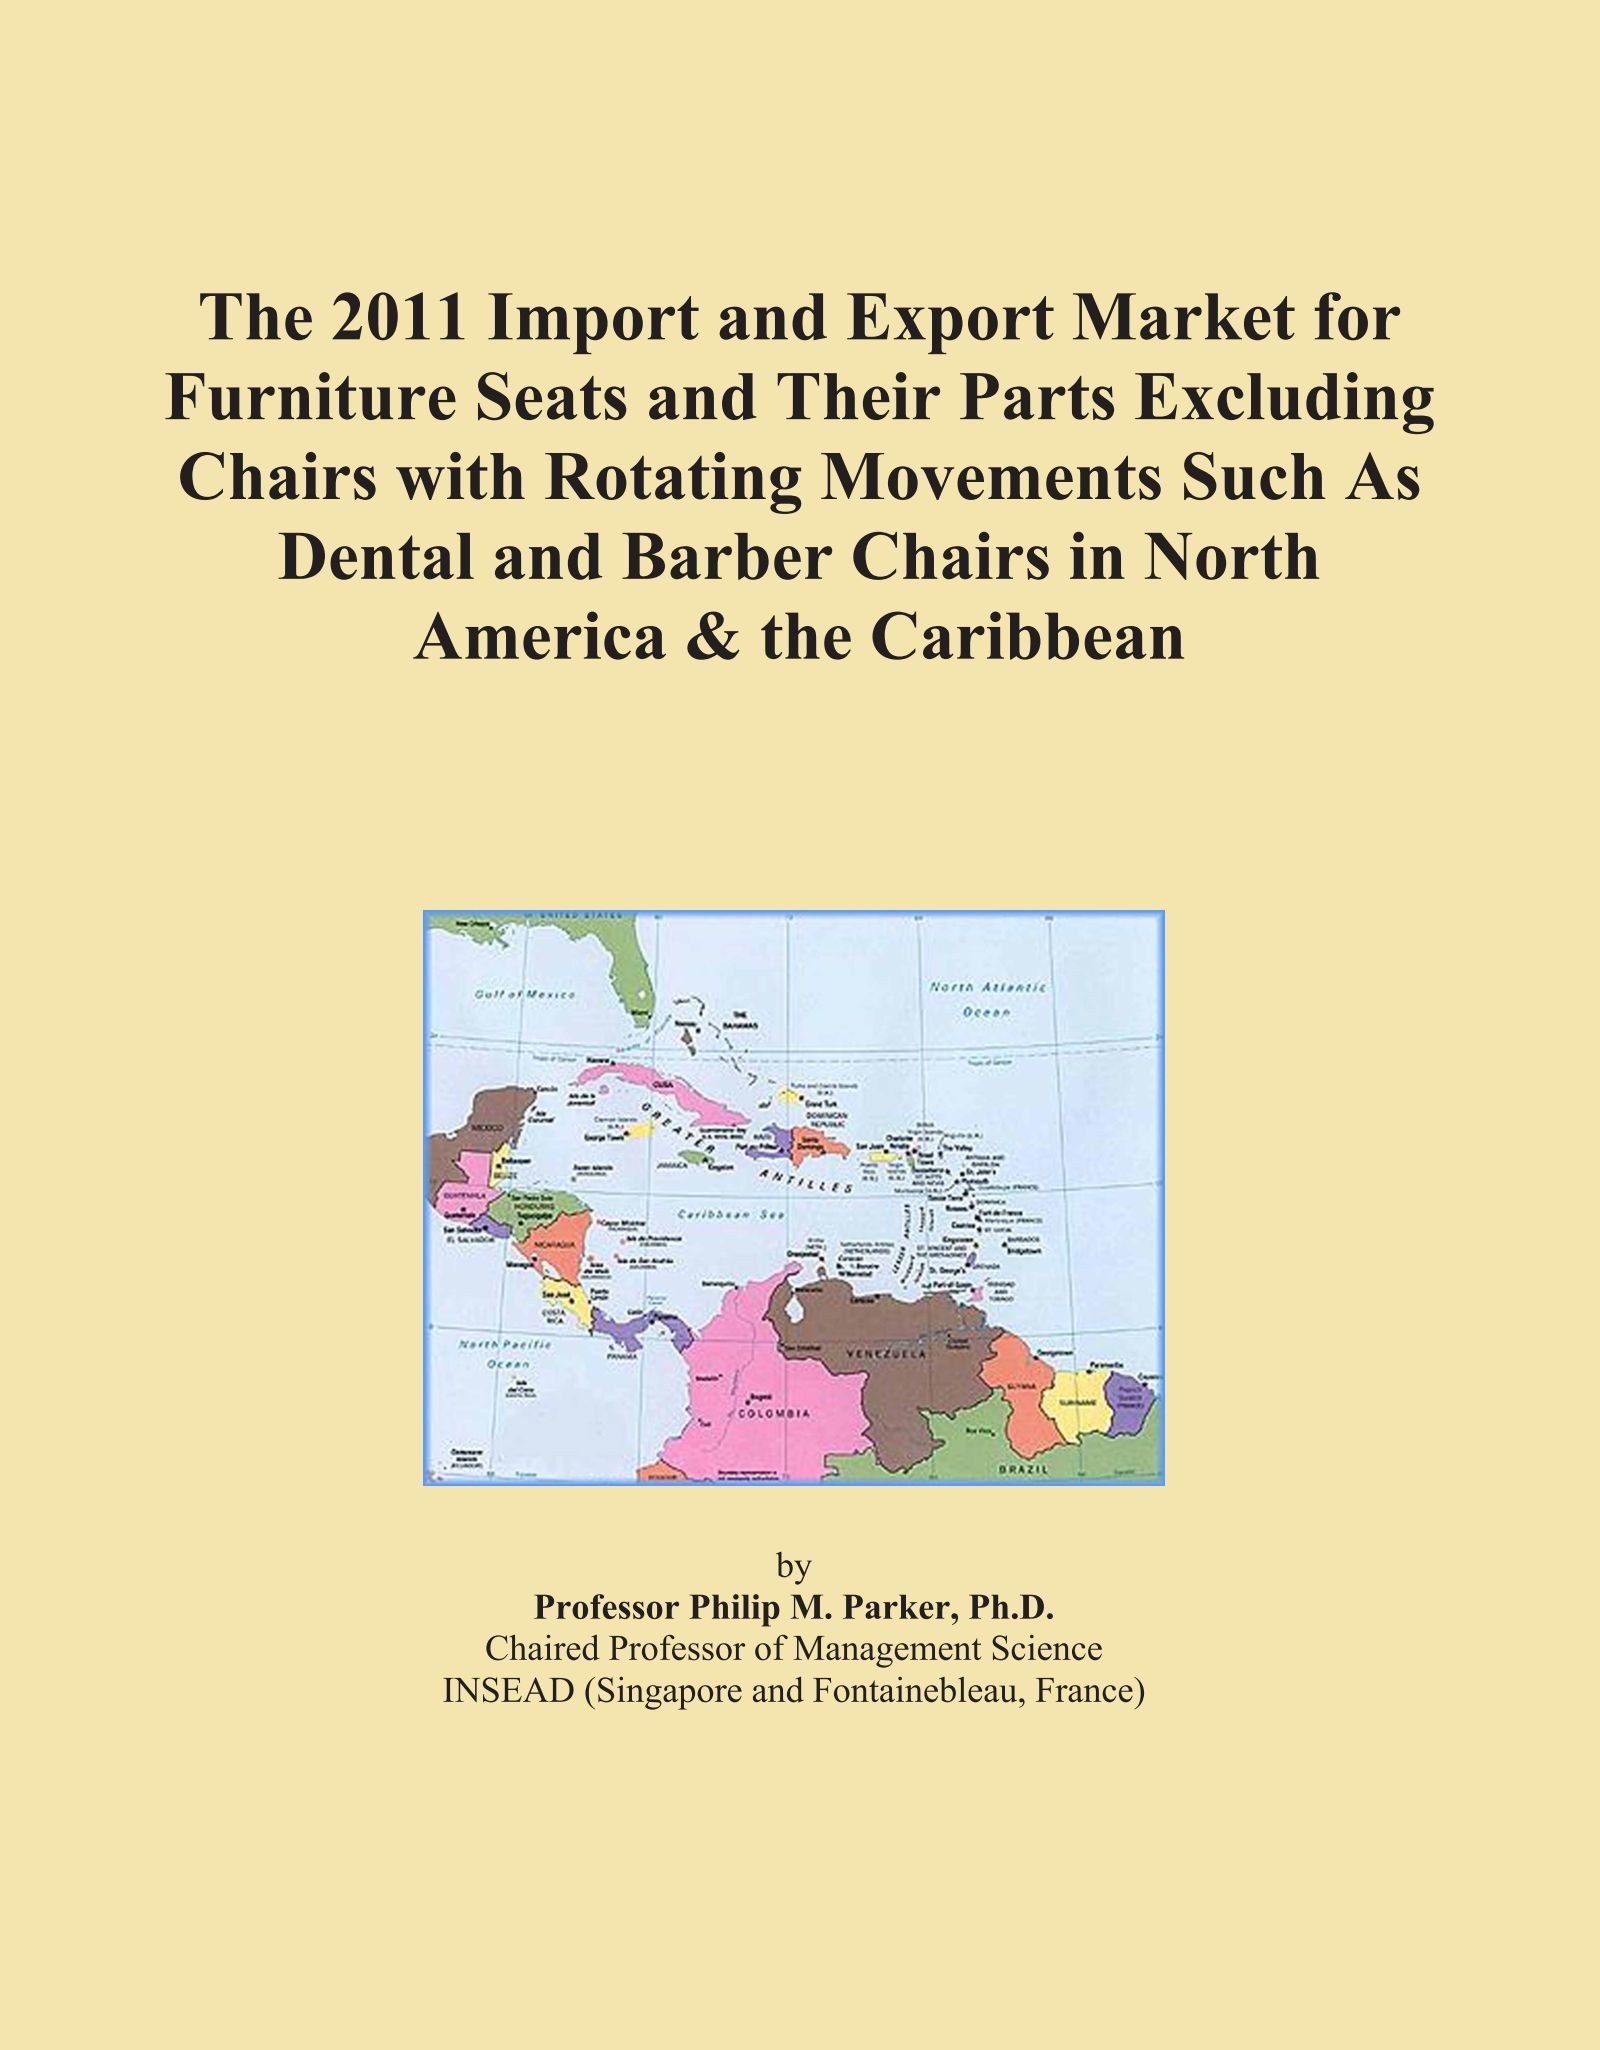 The 2011 Import and Export Market for Furniture Seats and Their Parts Excluding Chairs with Rotating Movements Such As Dental and Barber Chairs in North America & the Caribbean